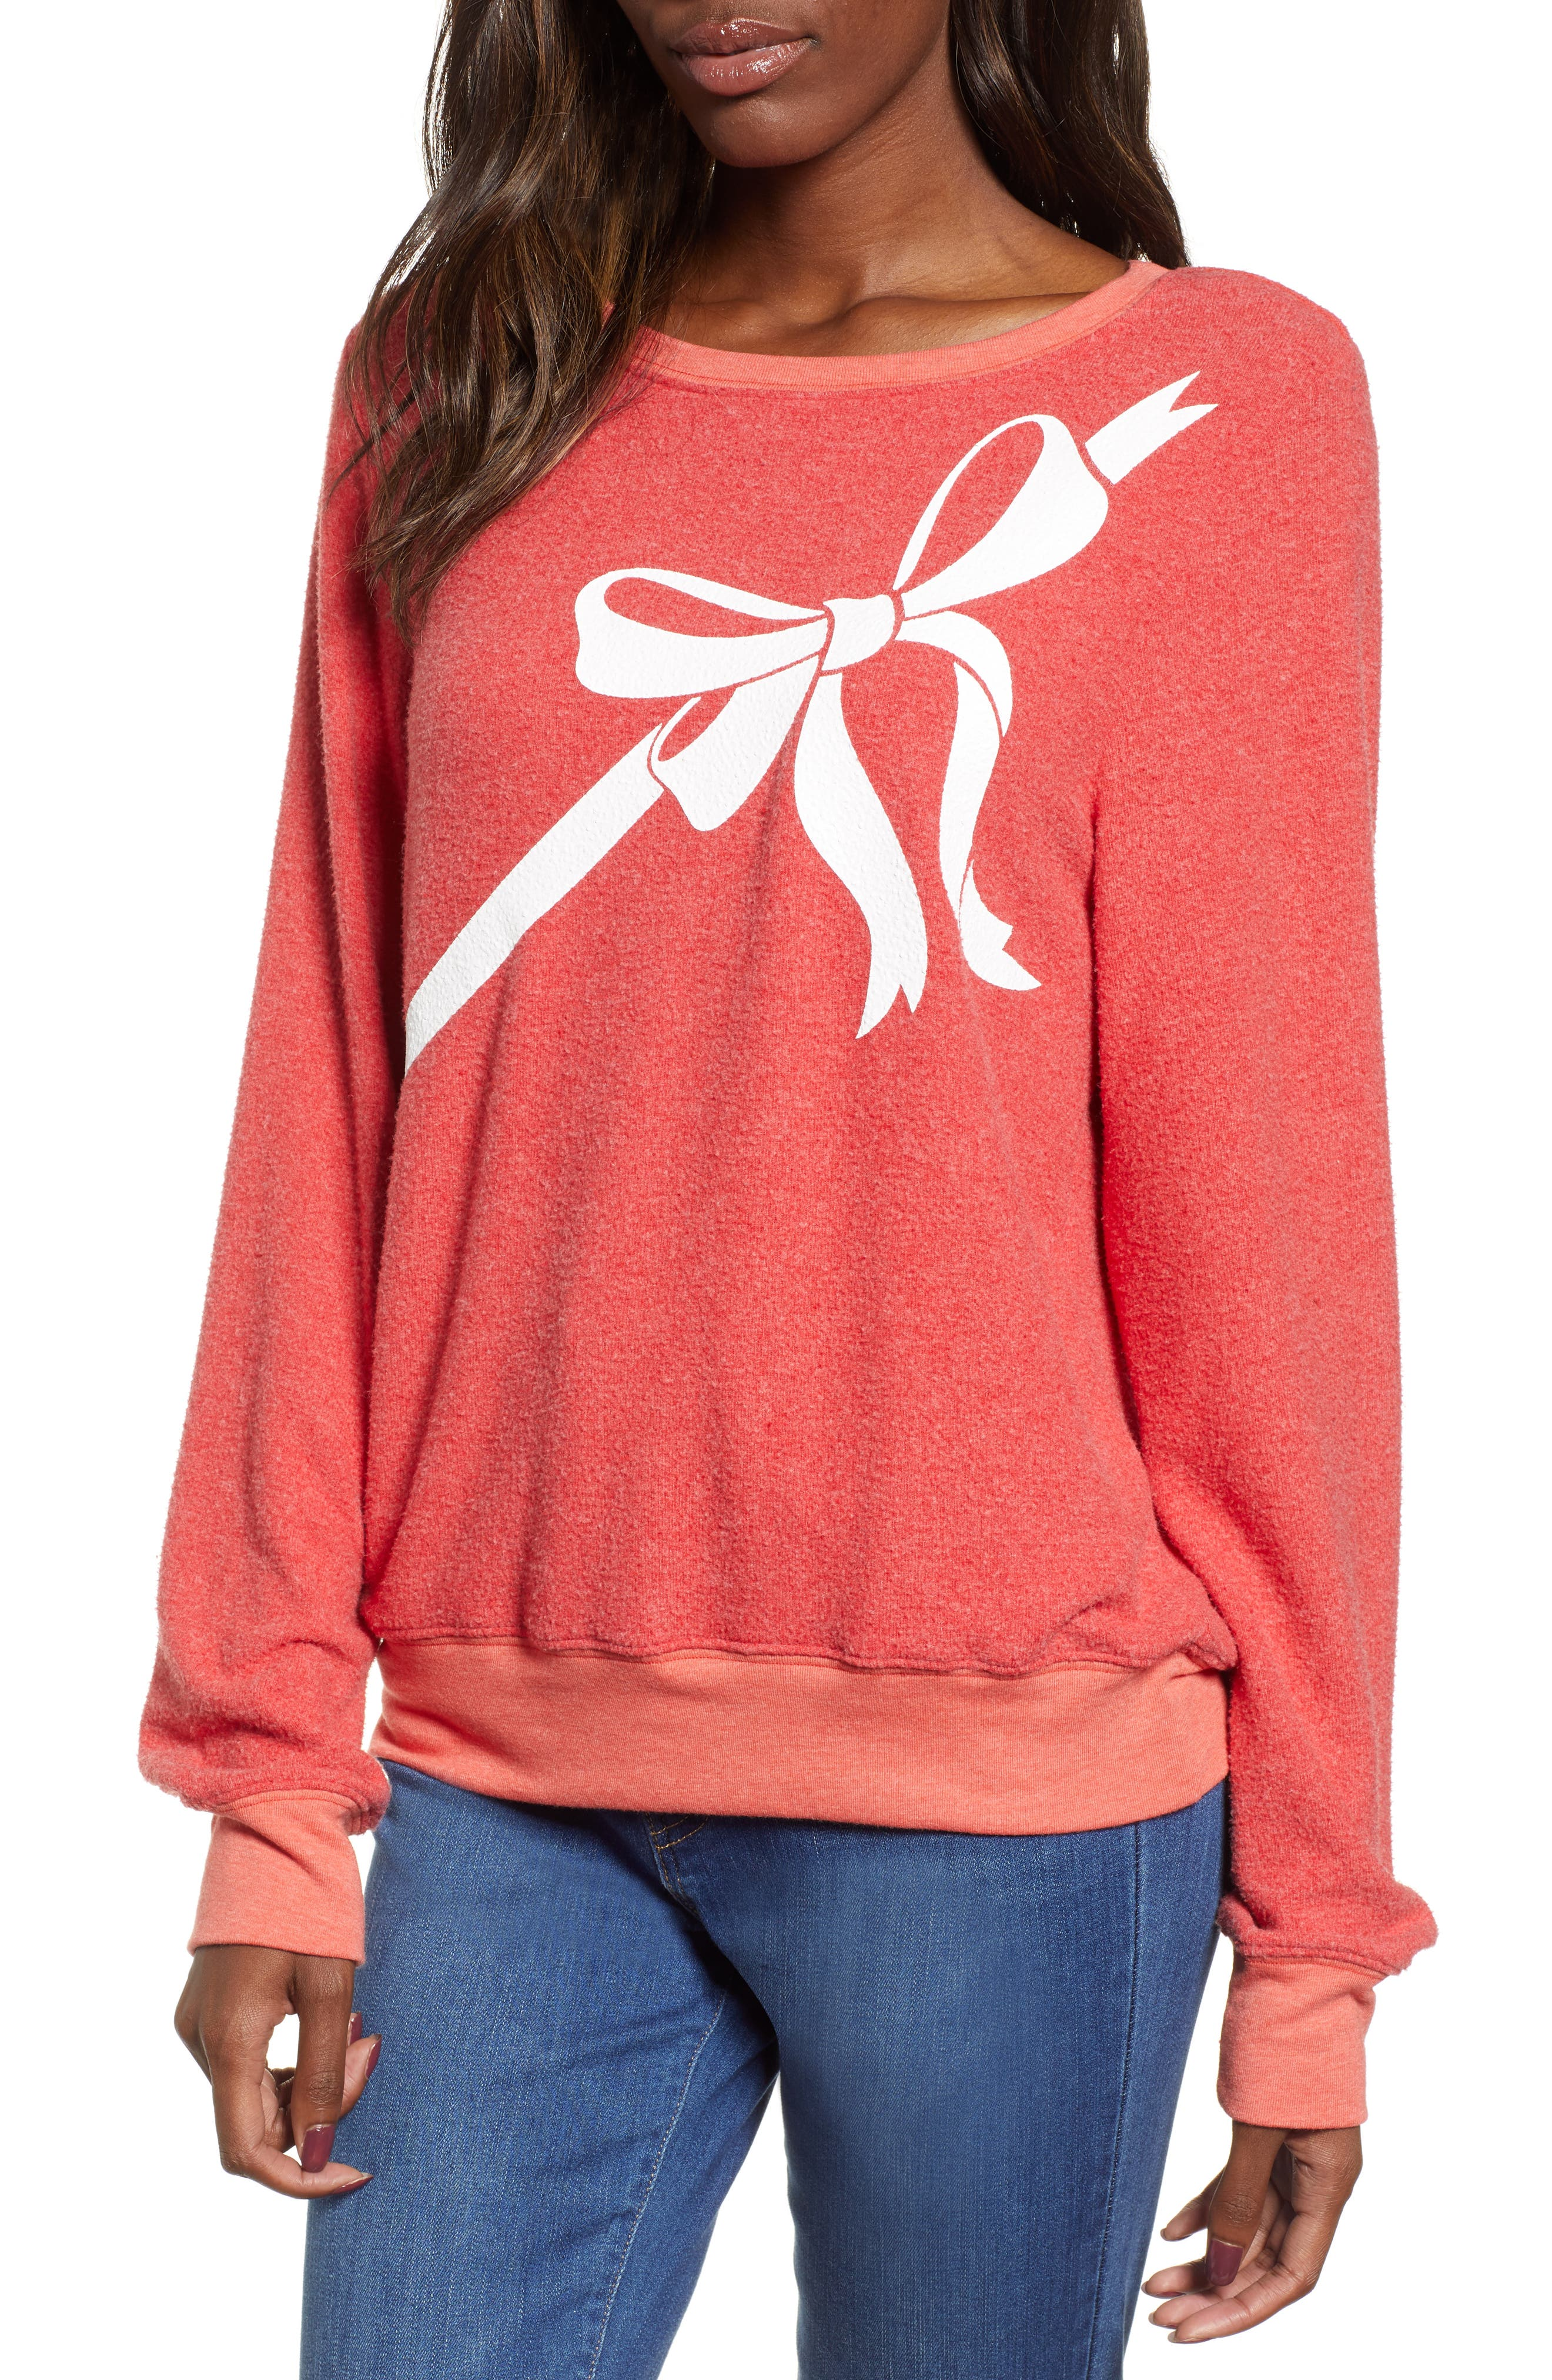 Gift Wrapped Sweatshirt,                         Main,                         color, SCARLET